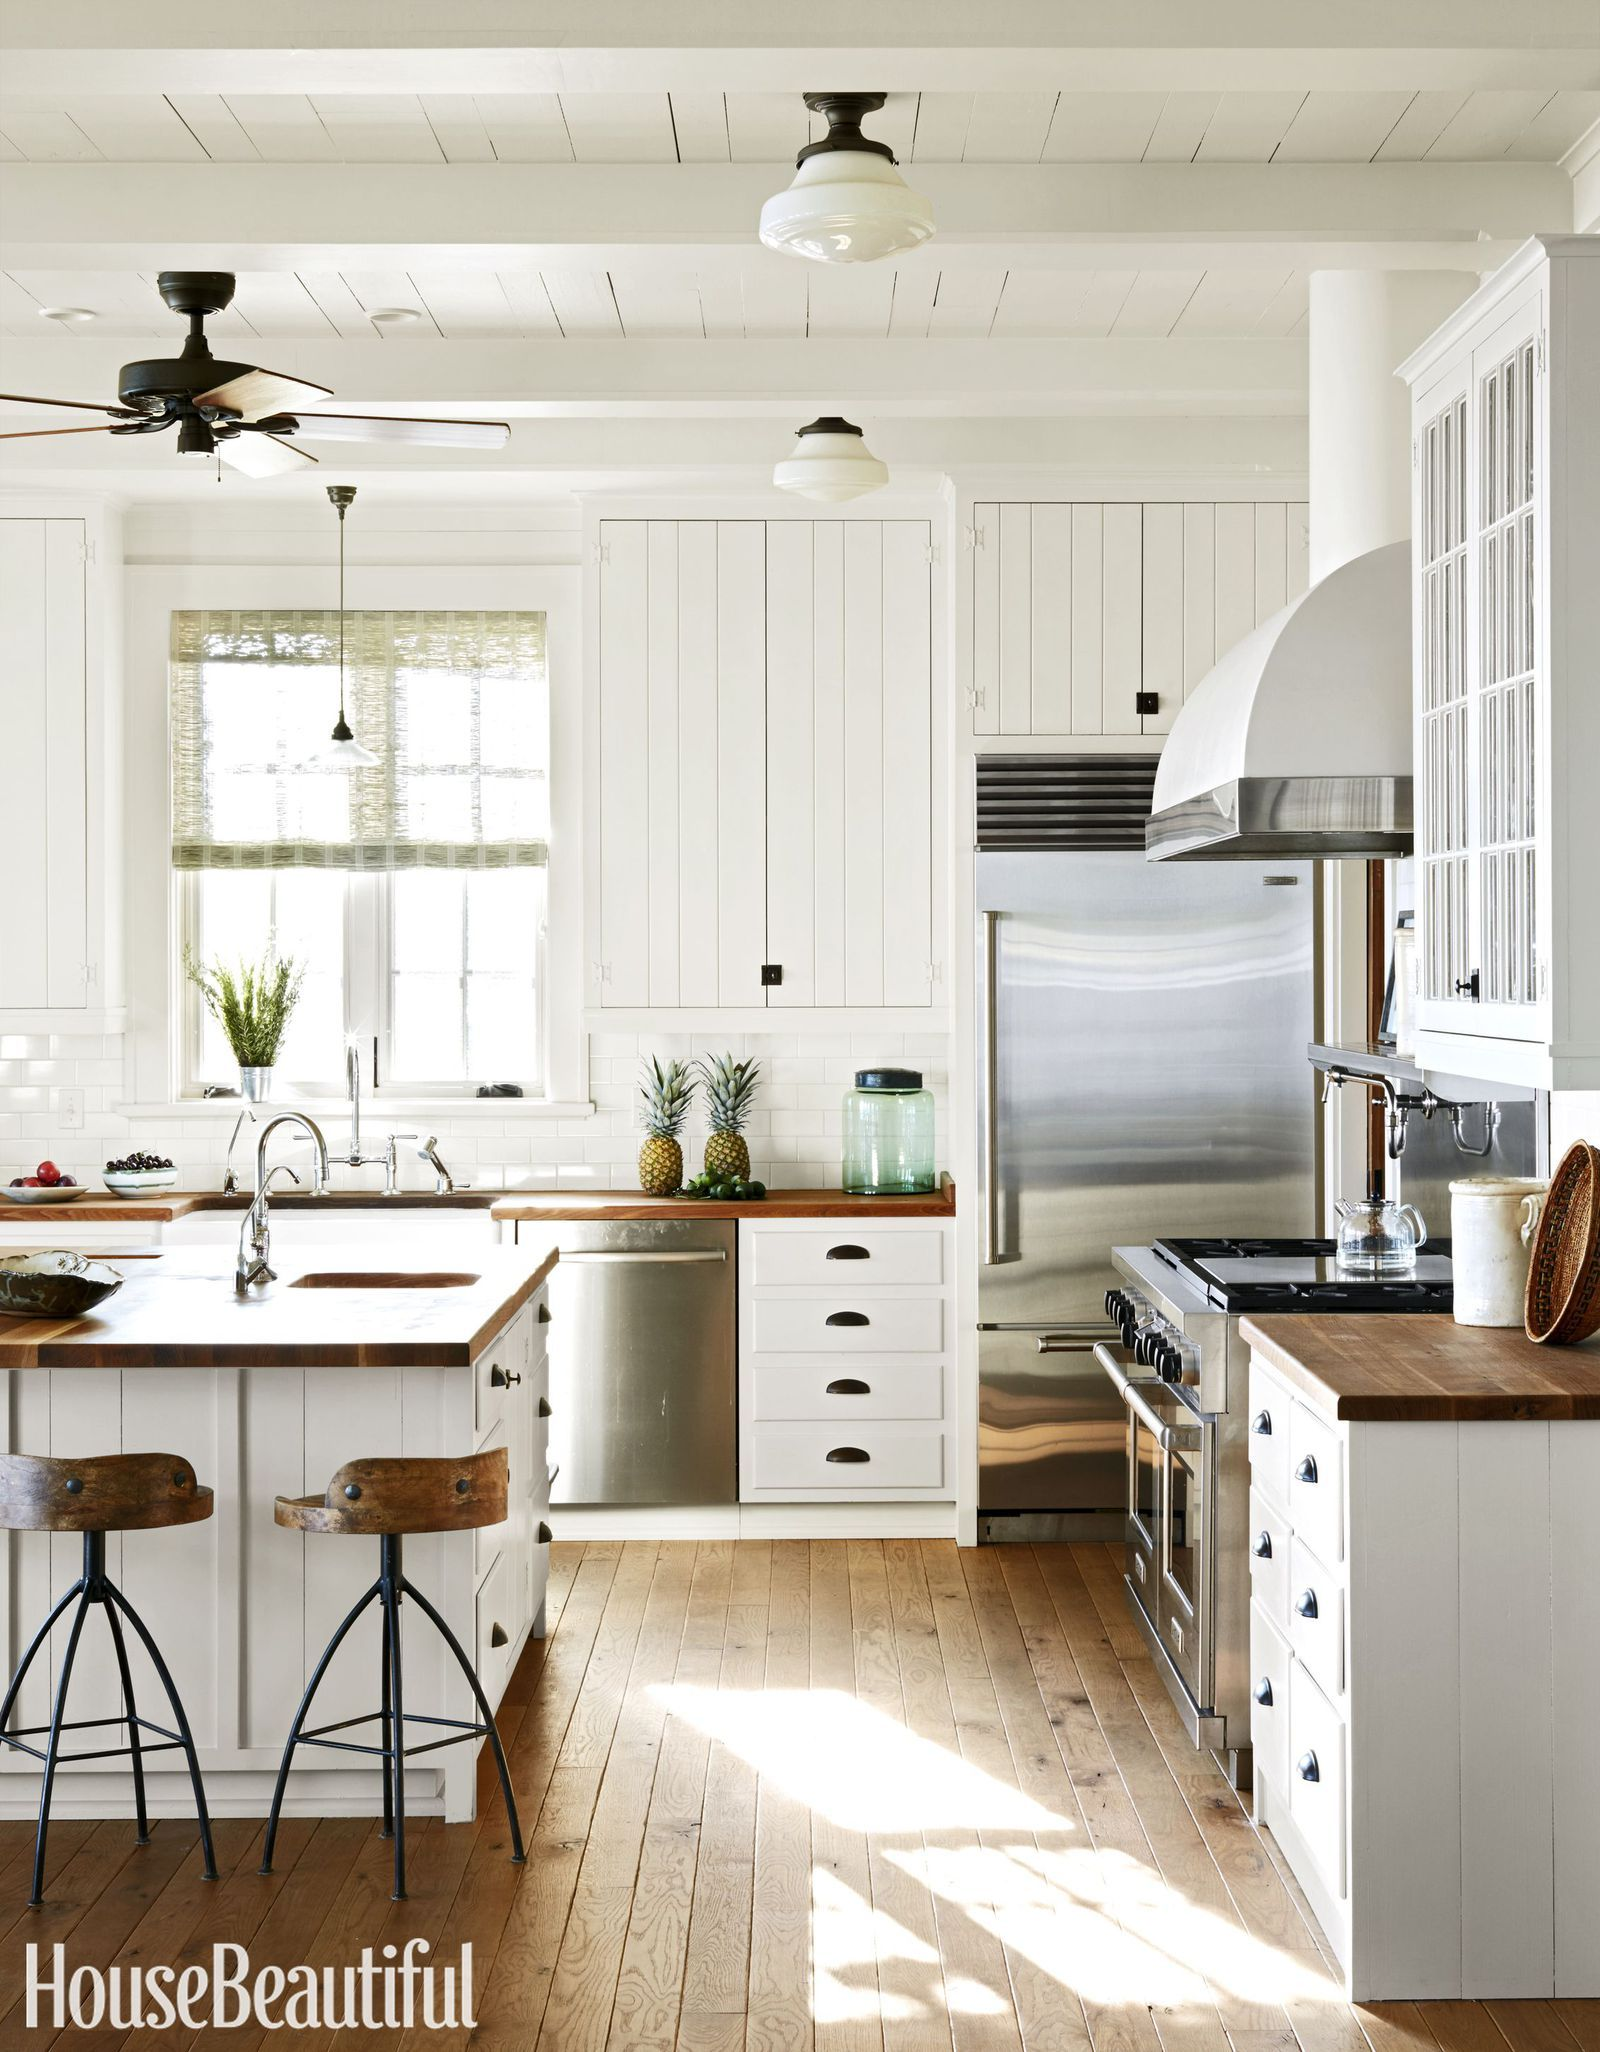 15 Rustic Kitchens That Are The Definition Of Cozy Bright White